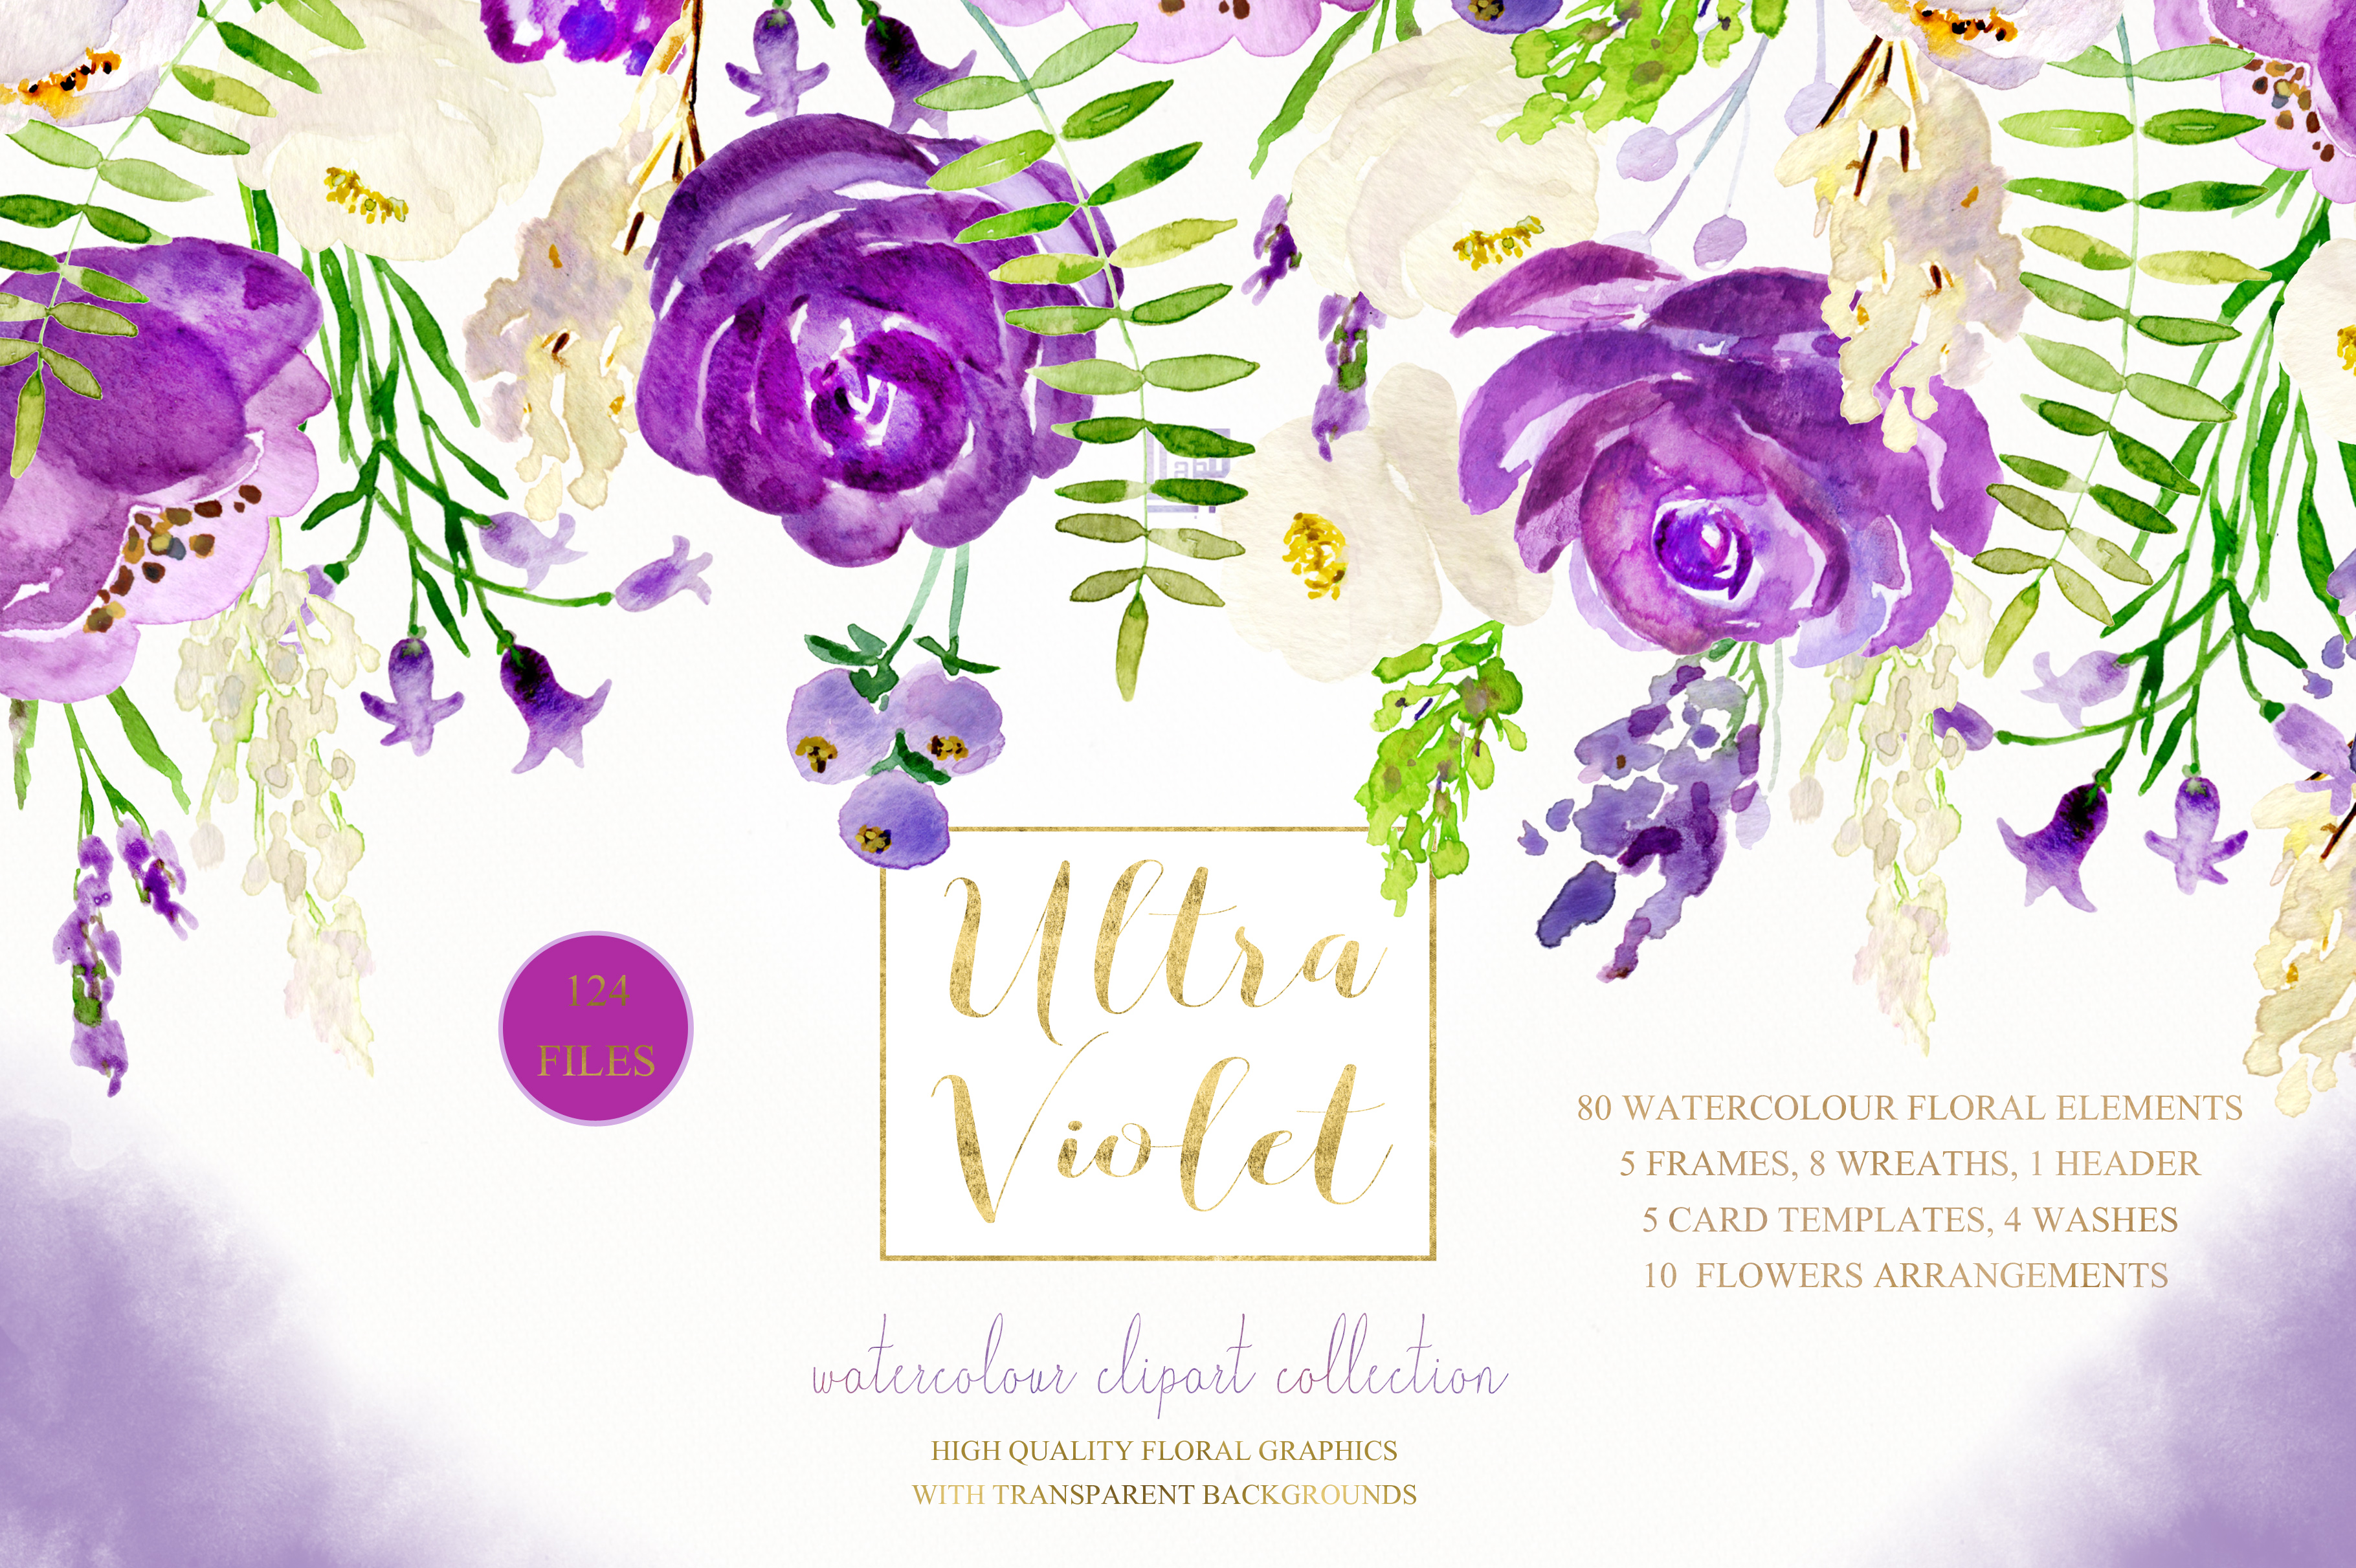 Ultra violet watercolor flowers example image 1